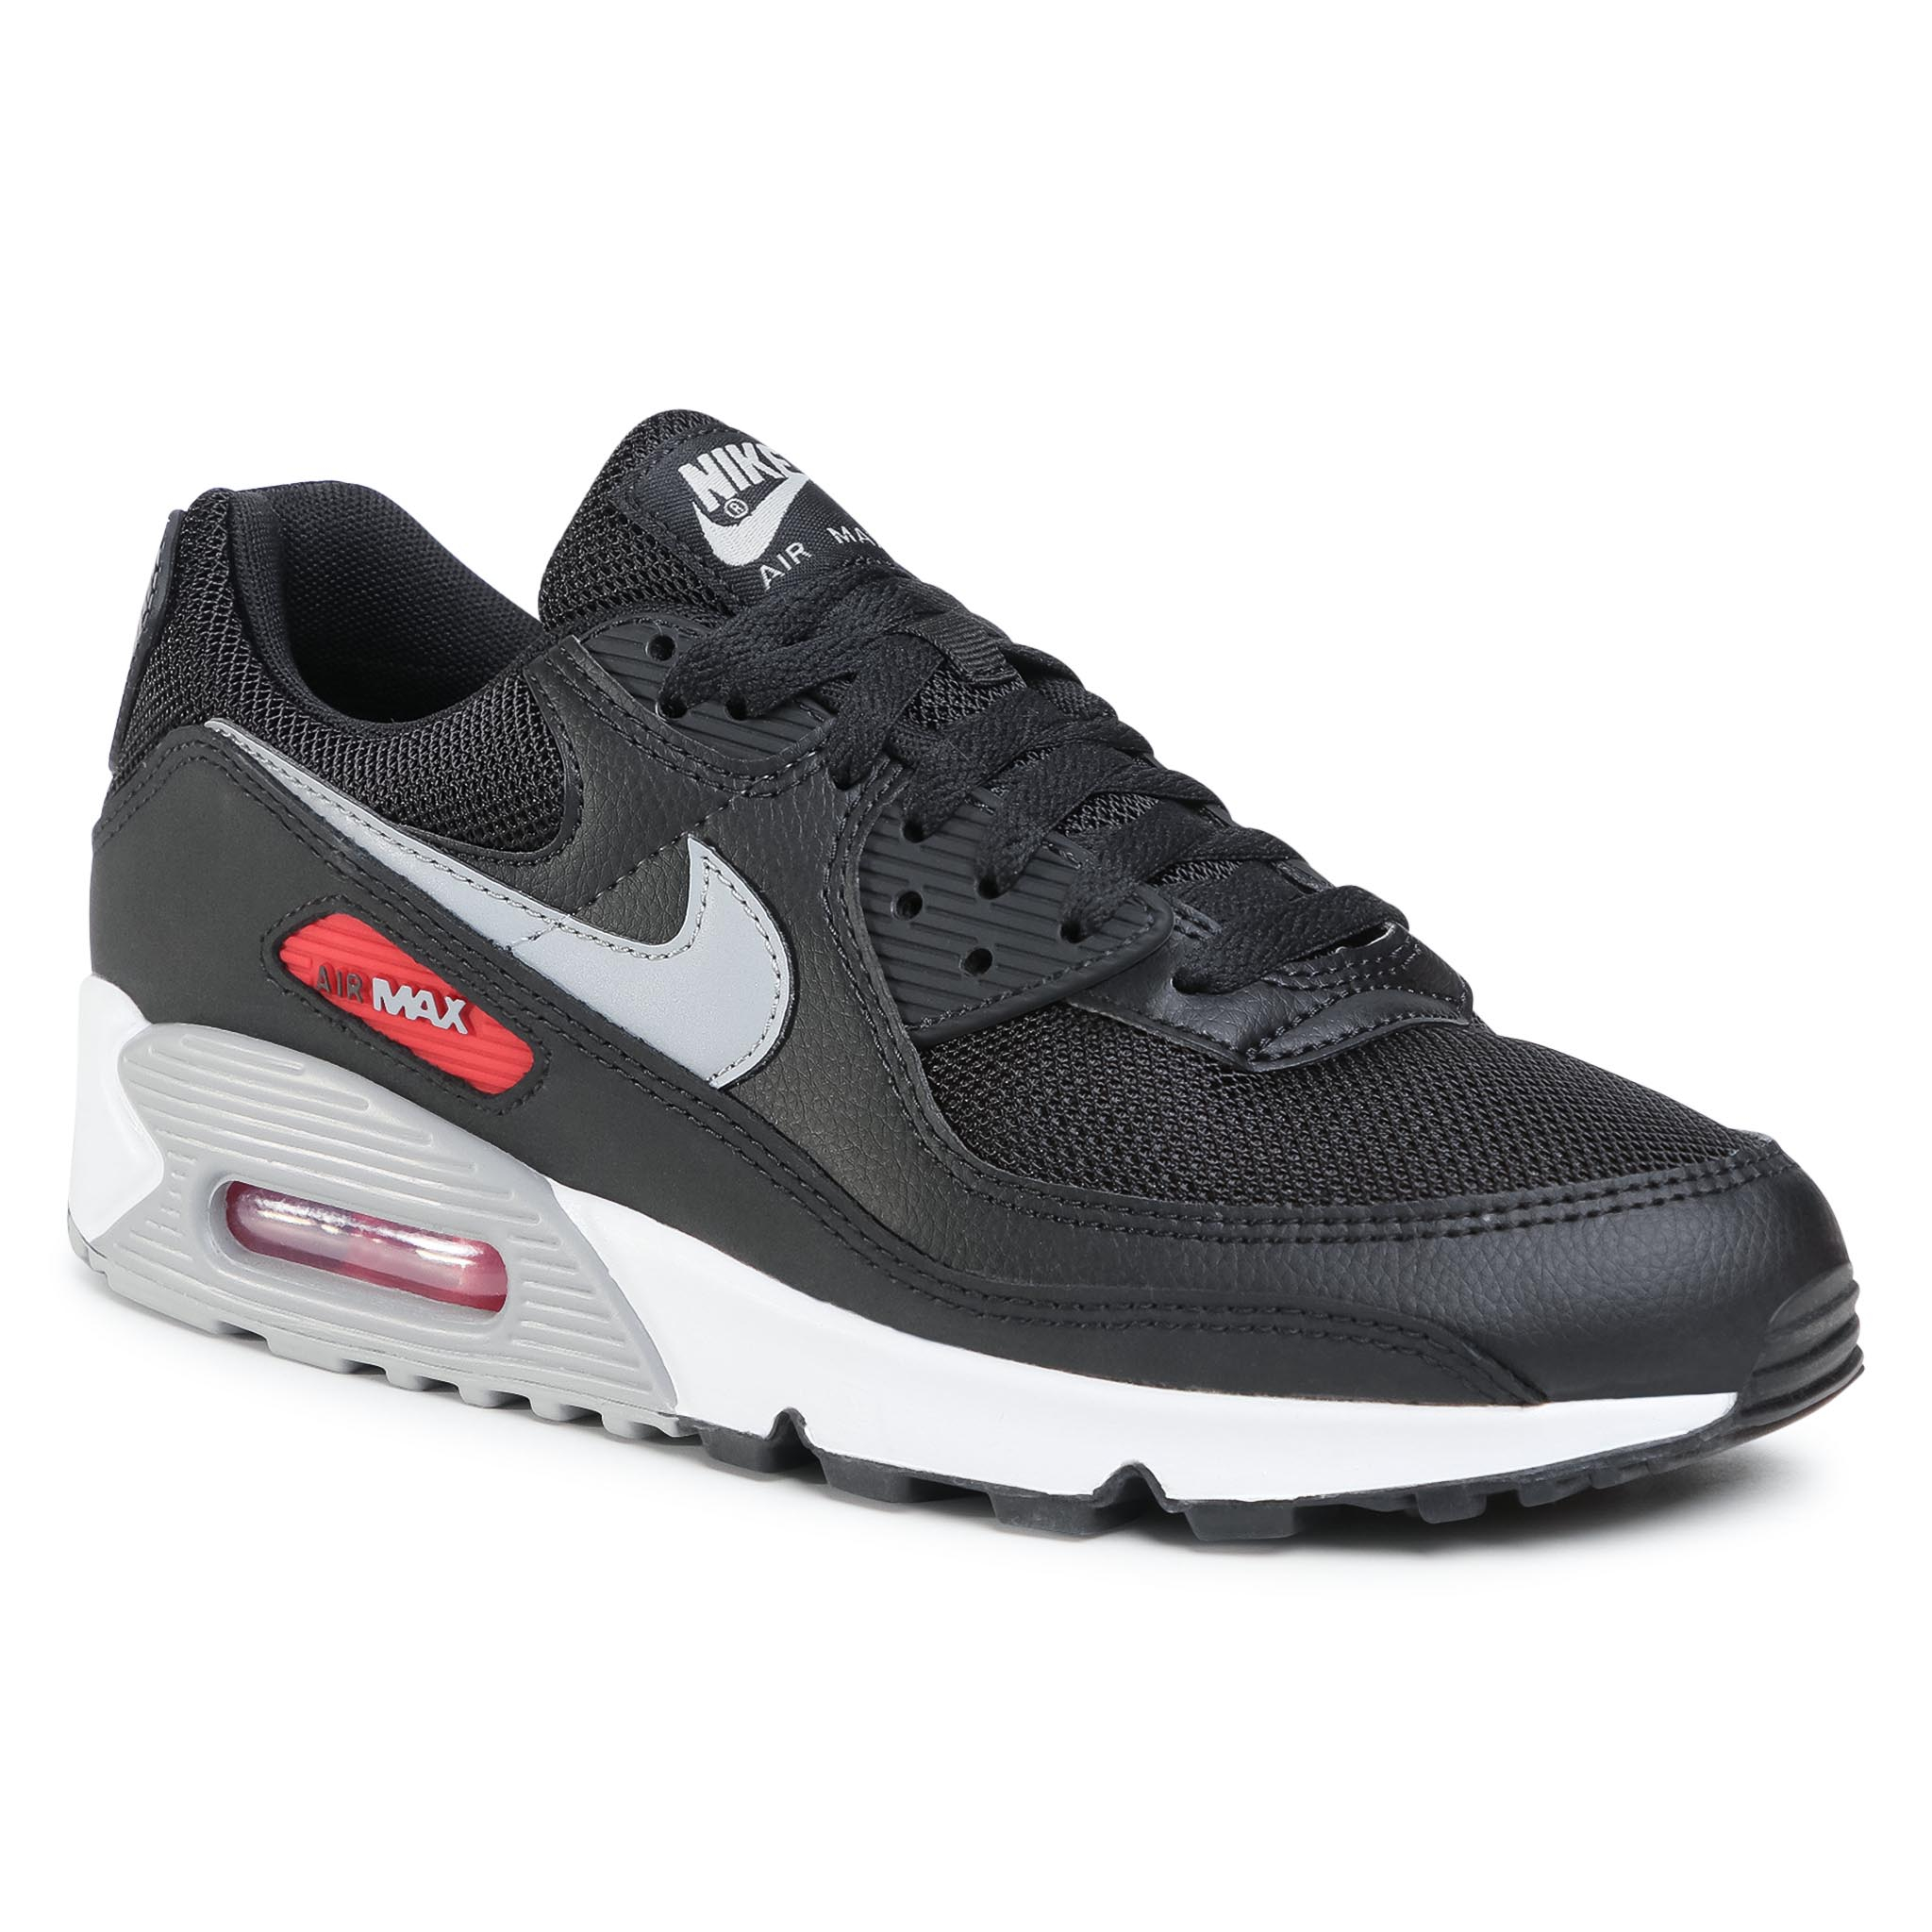 Sneaker Nike Zapatos NIKE - Nike Air Max 90 CW7481 002 Black/Particle Grey